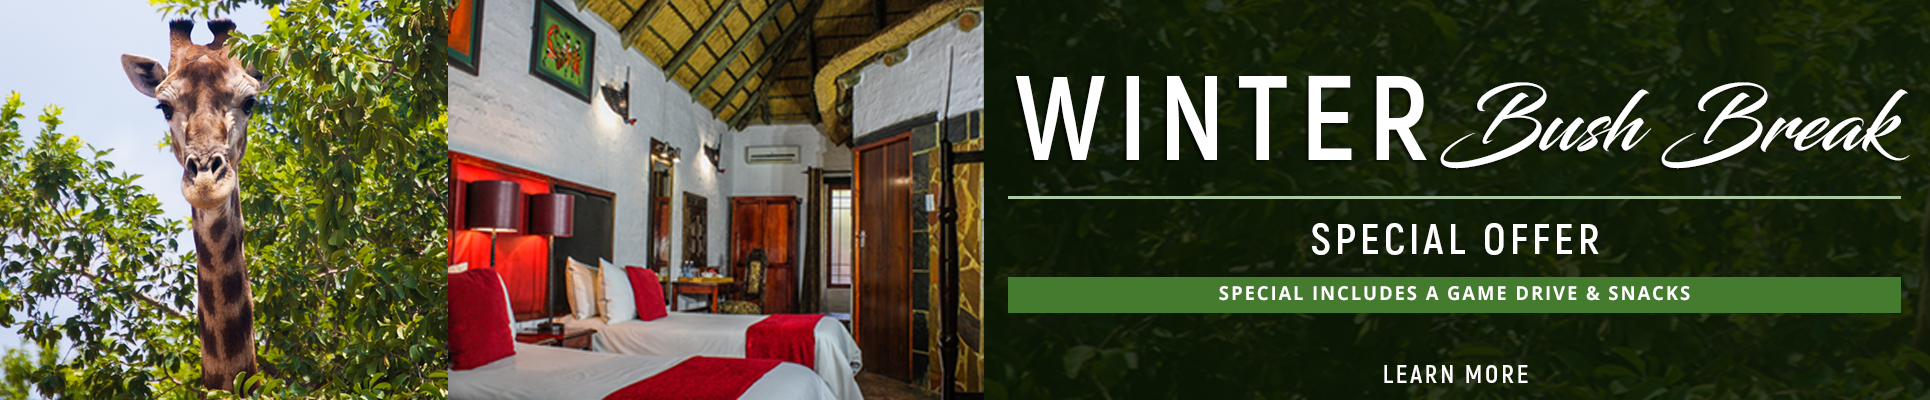 Kedar Heritage Lodge Winter Weekend Madness Accommodation Special Get 50% Off